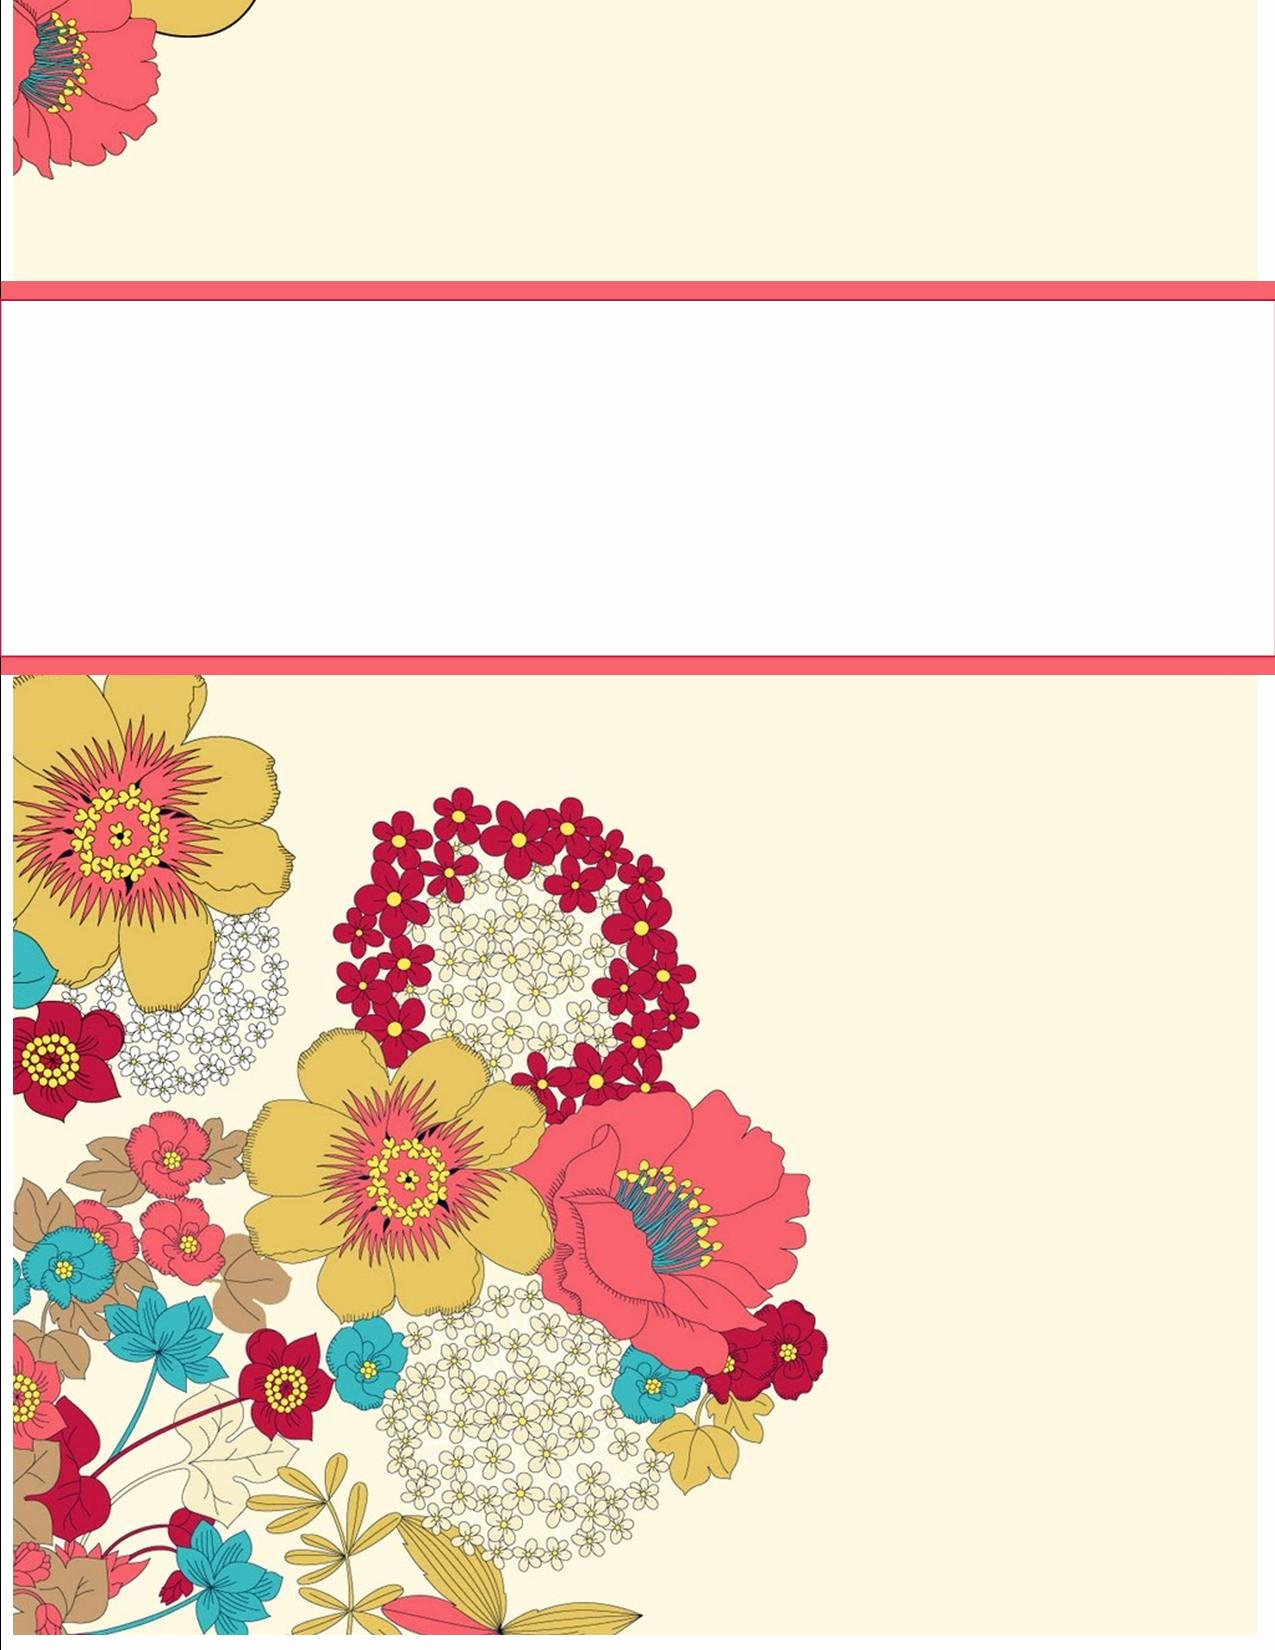 Free Binder Cover Printables Lovely My Cute Binder Covers